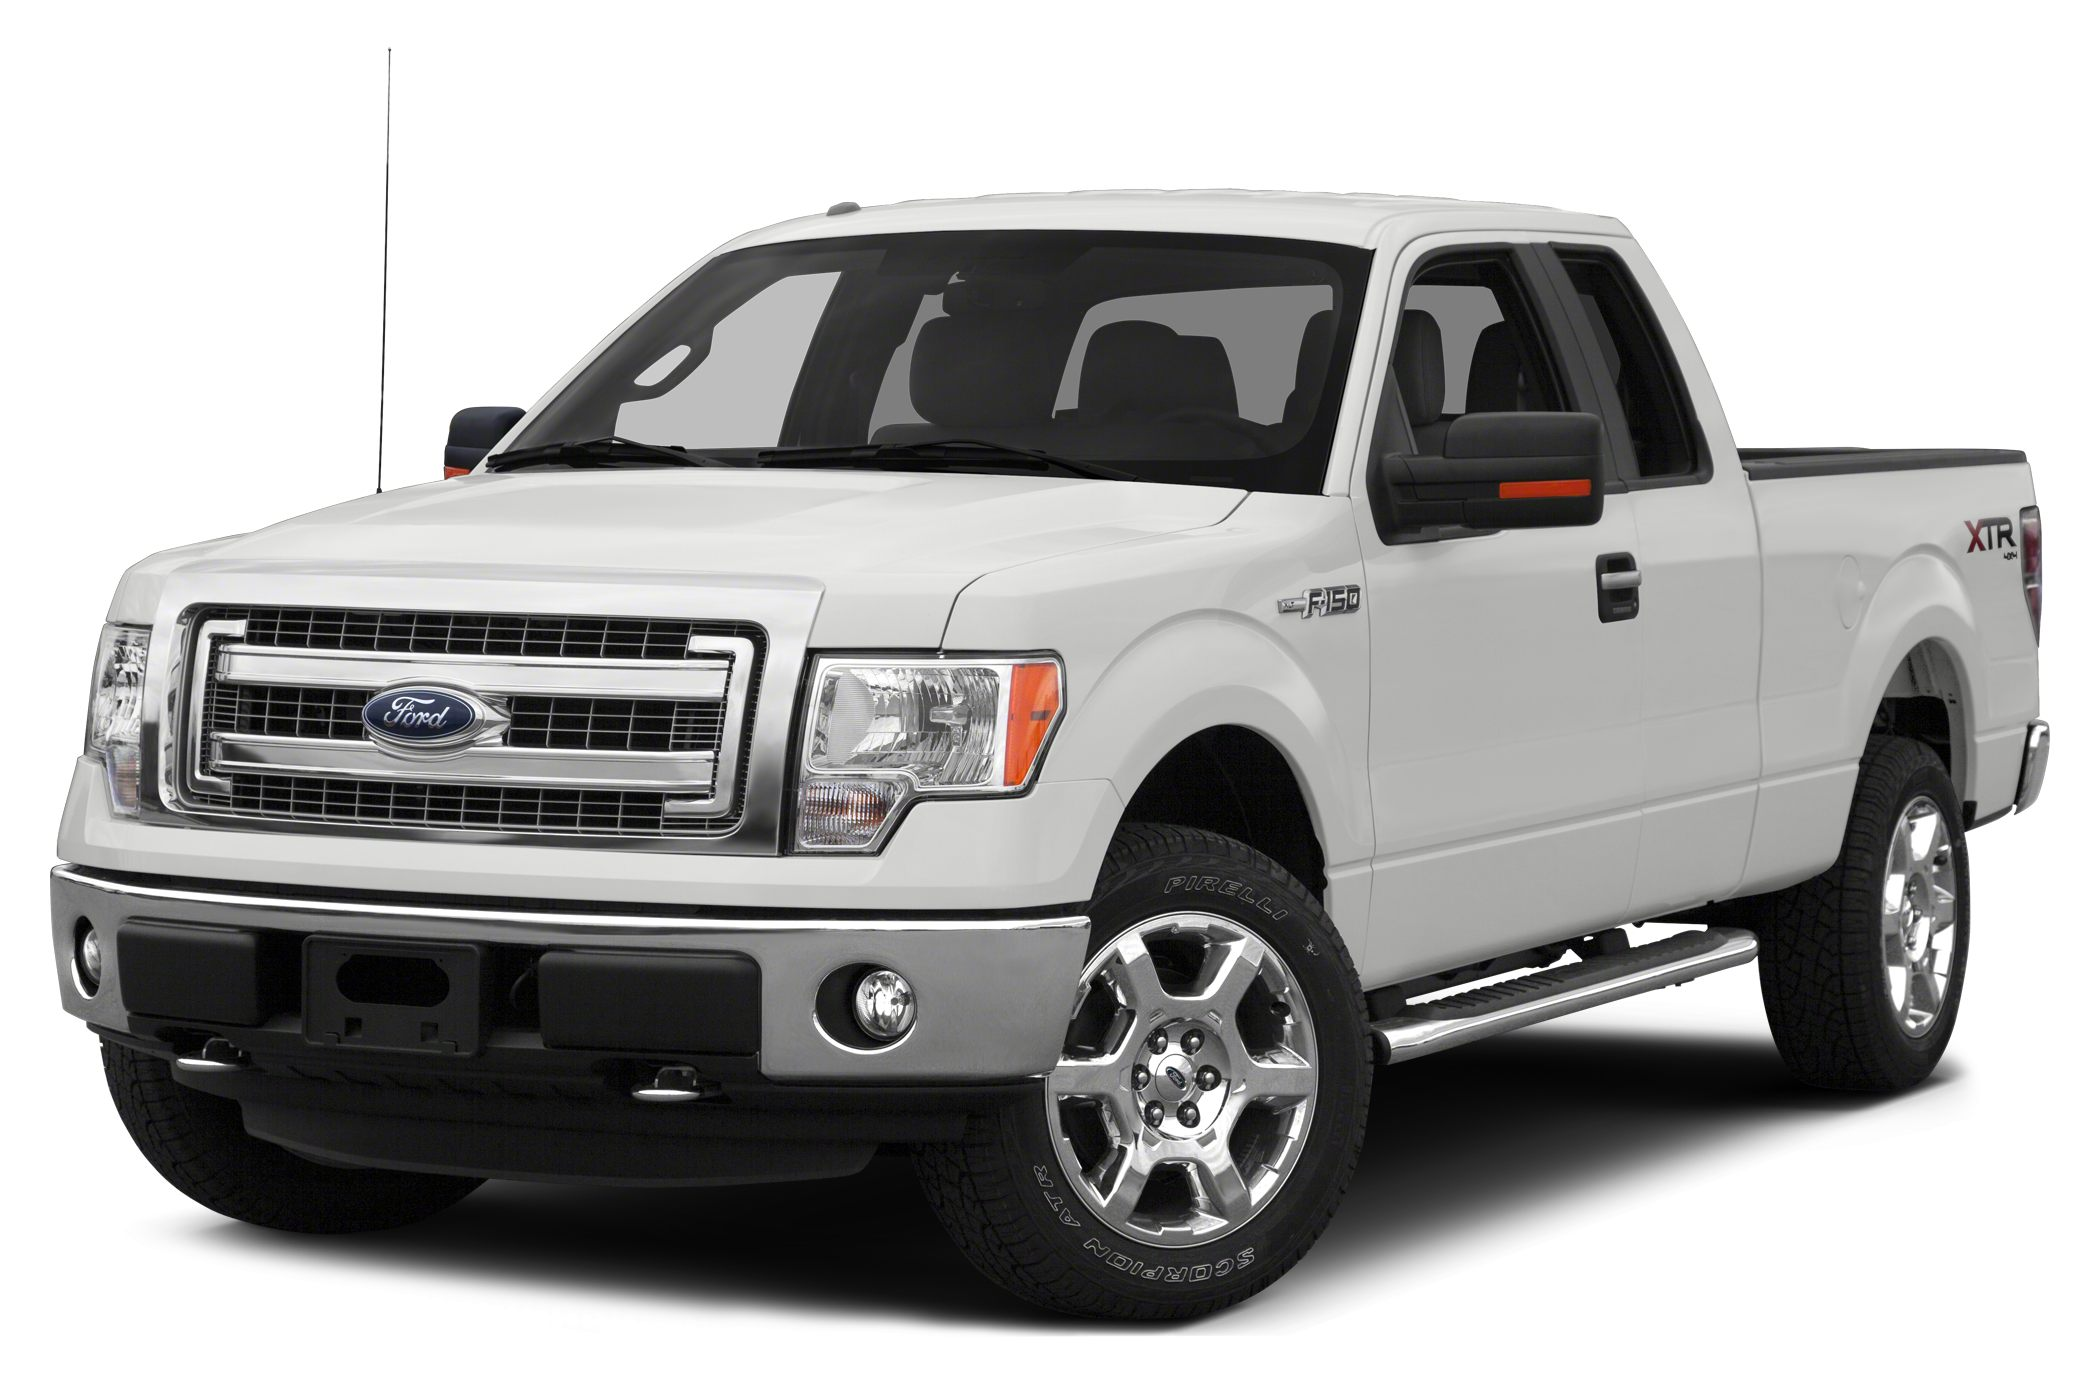 2014 Ford F150 Lariat Extended Cab Pickup for sale in Summersville for $40,999 with 2,656 miles